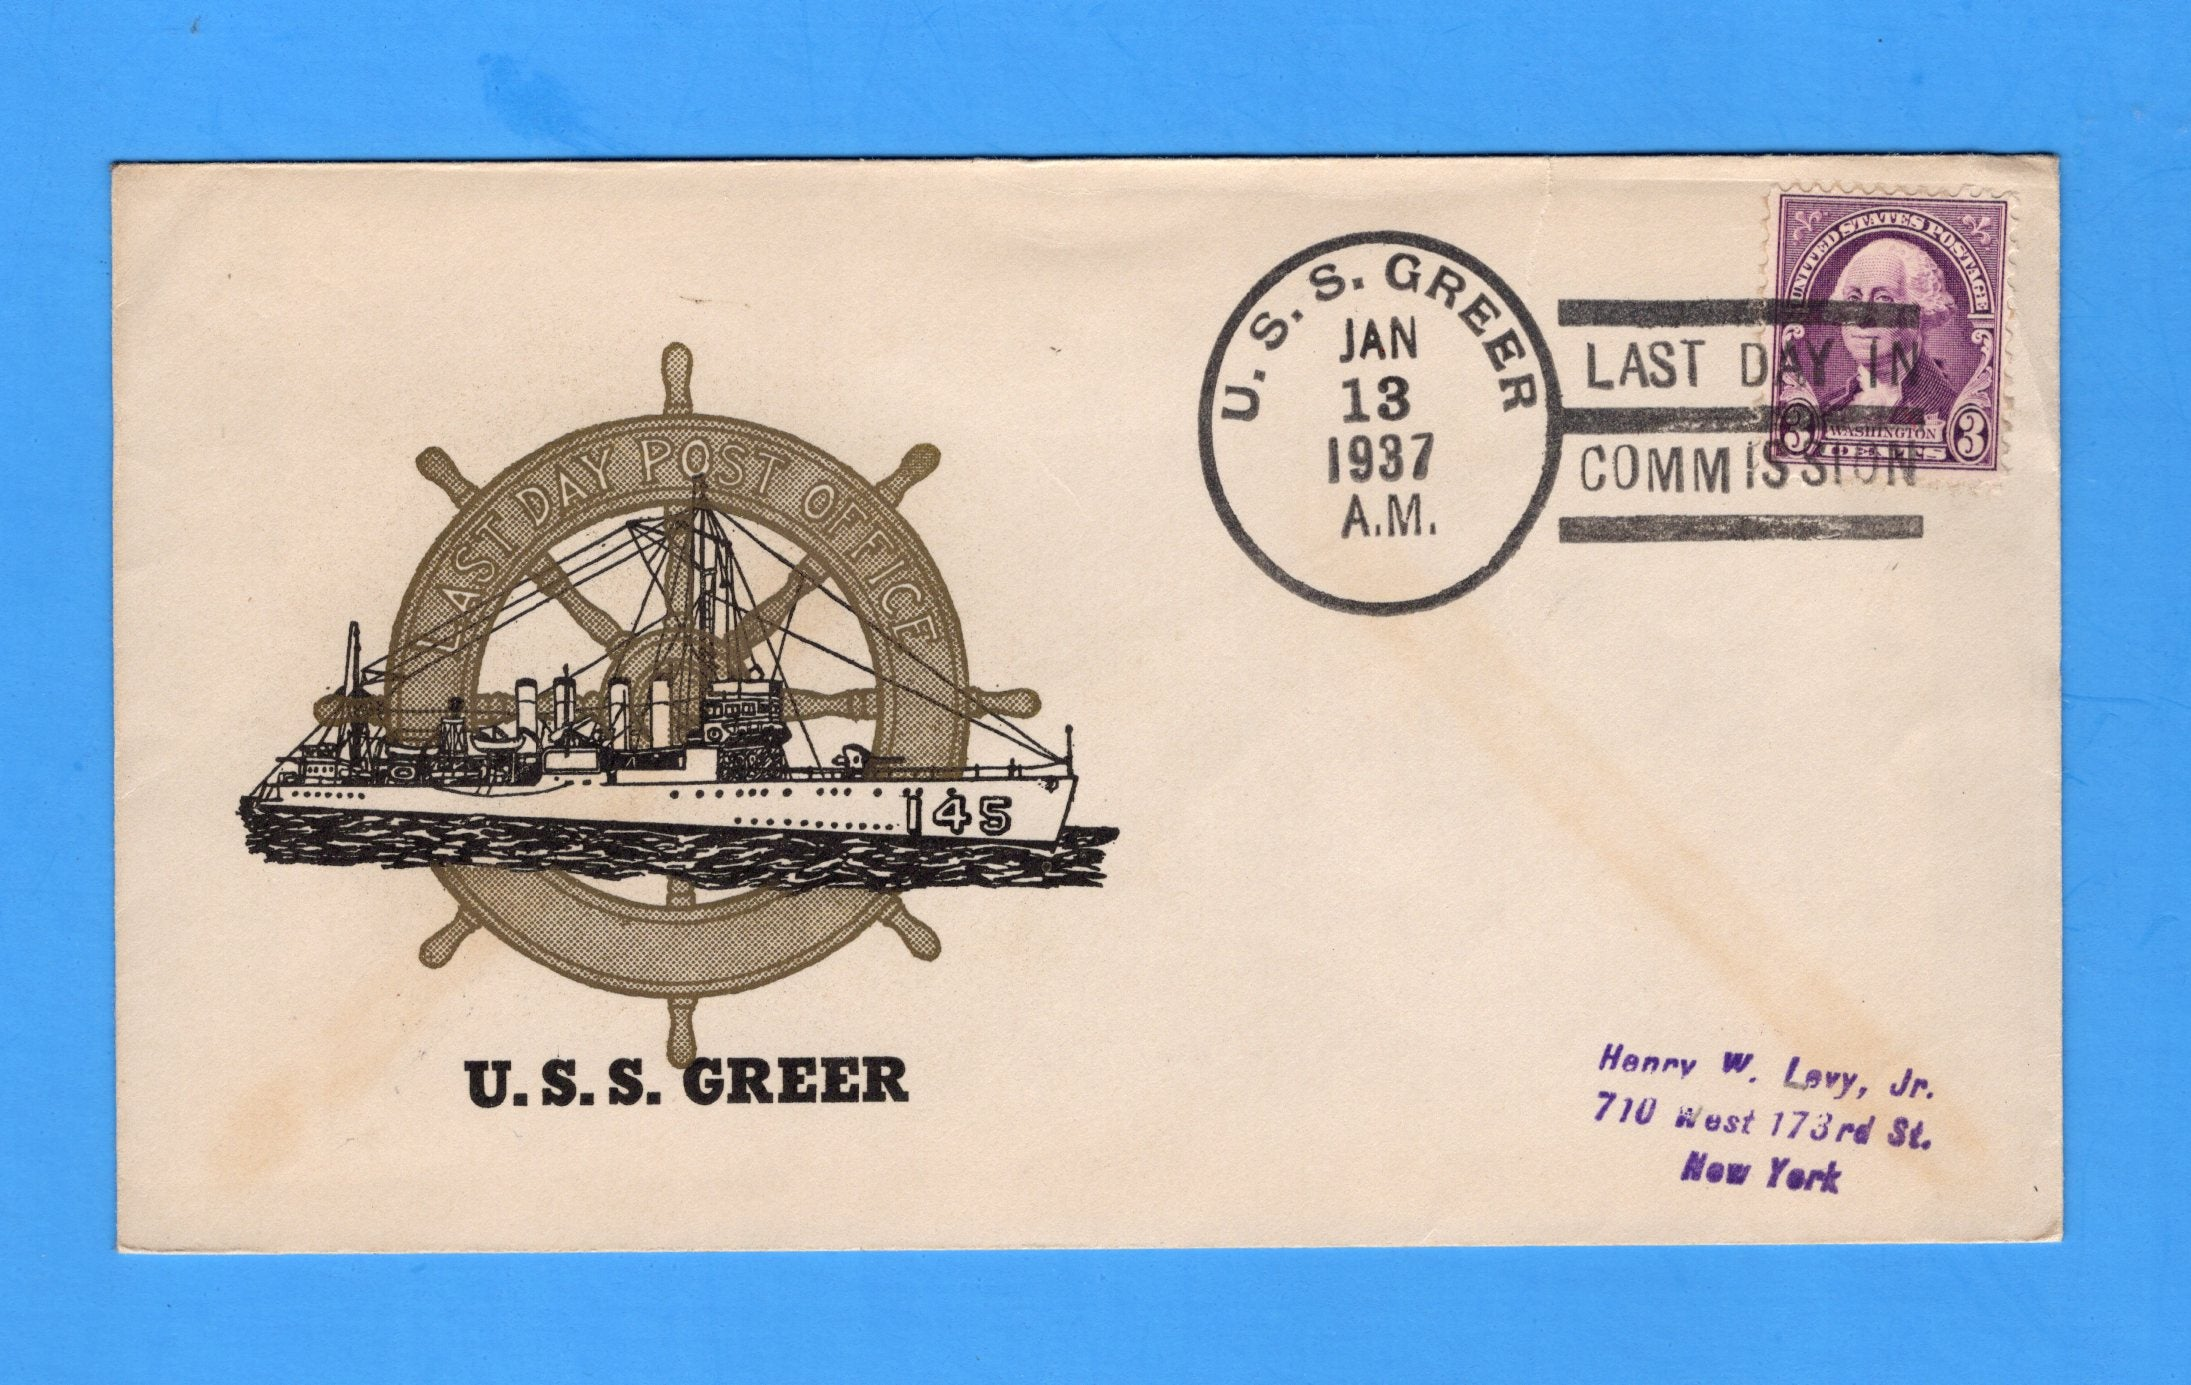 USS Greer DD-145 Decommissioned January 13, 1937